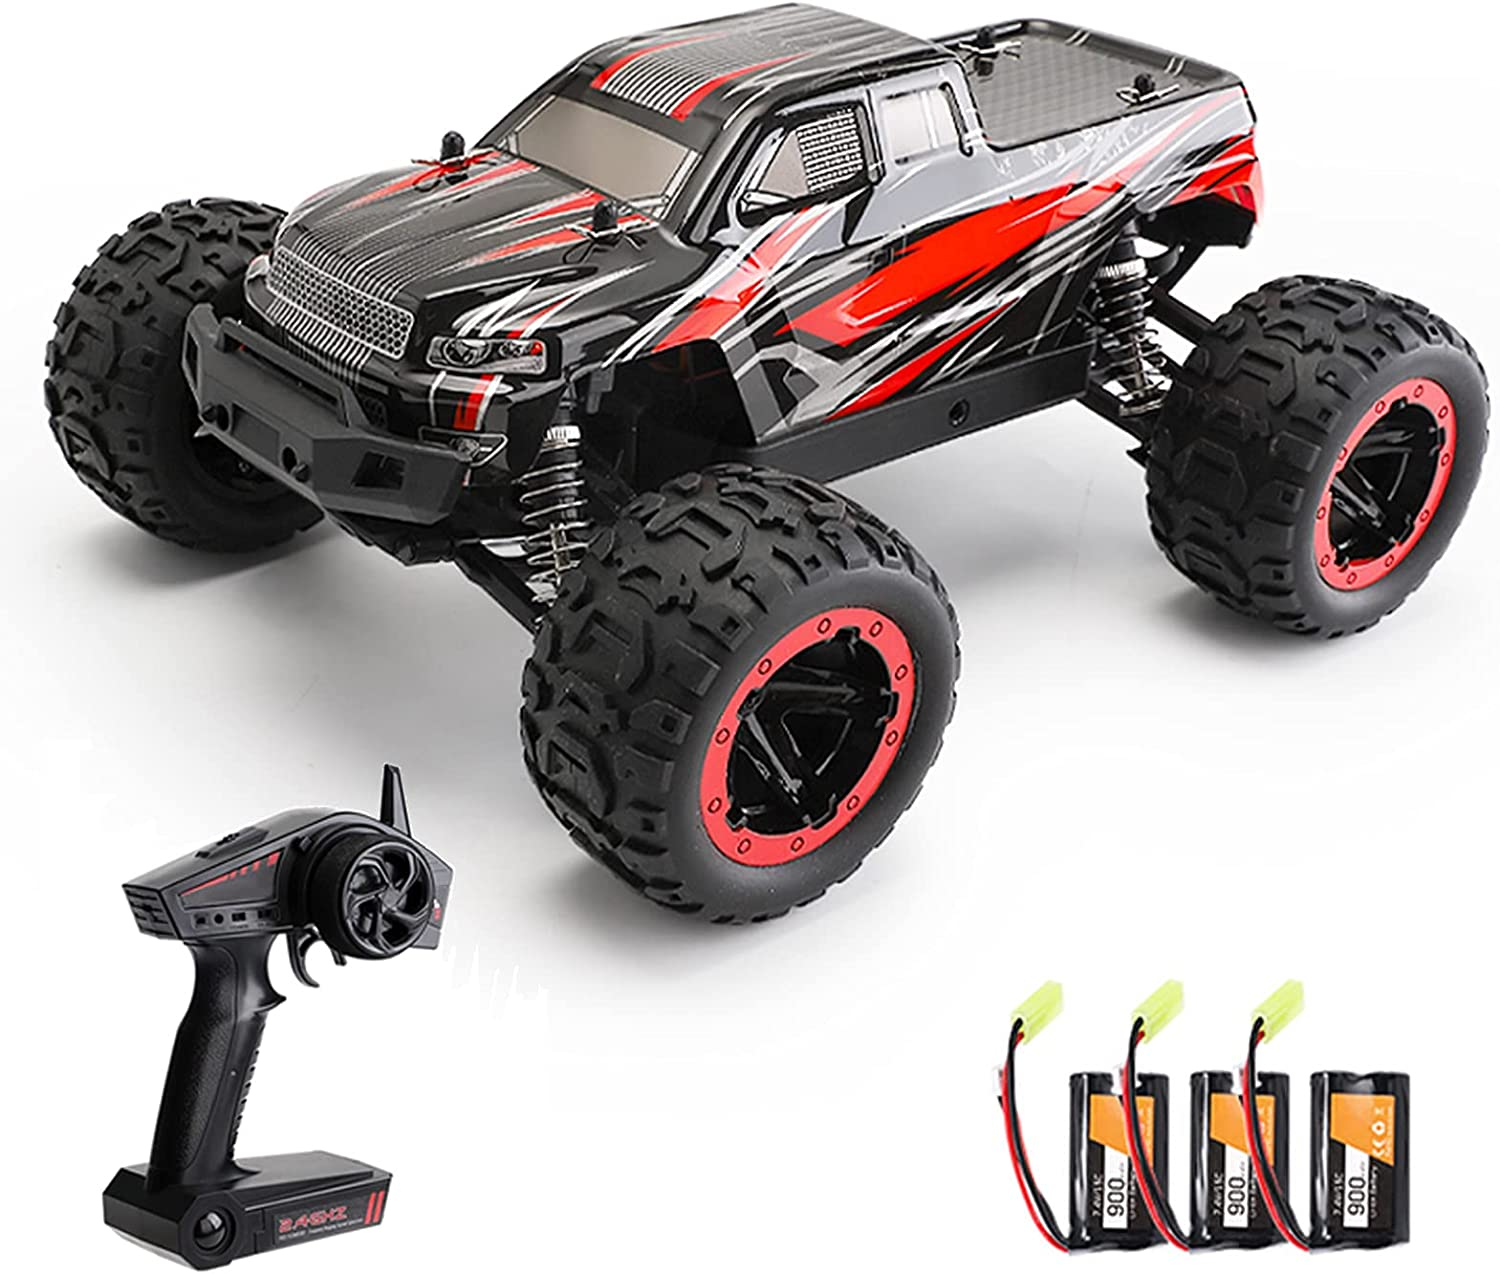 GoolRC RC Cars 1:16 Scale Remote Control San Francisco Mall Direct stock discount 4WD H Car S High 40KM